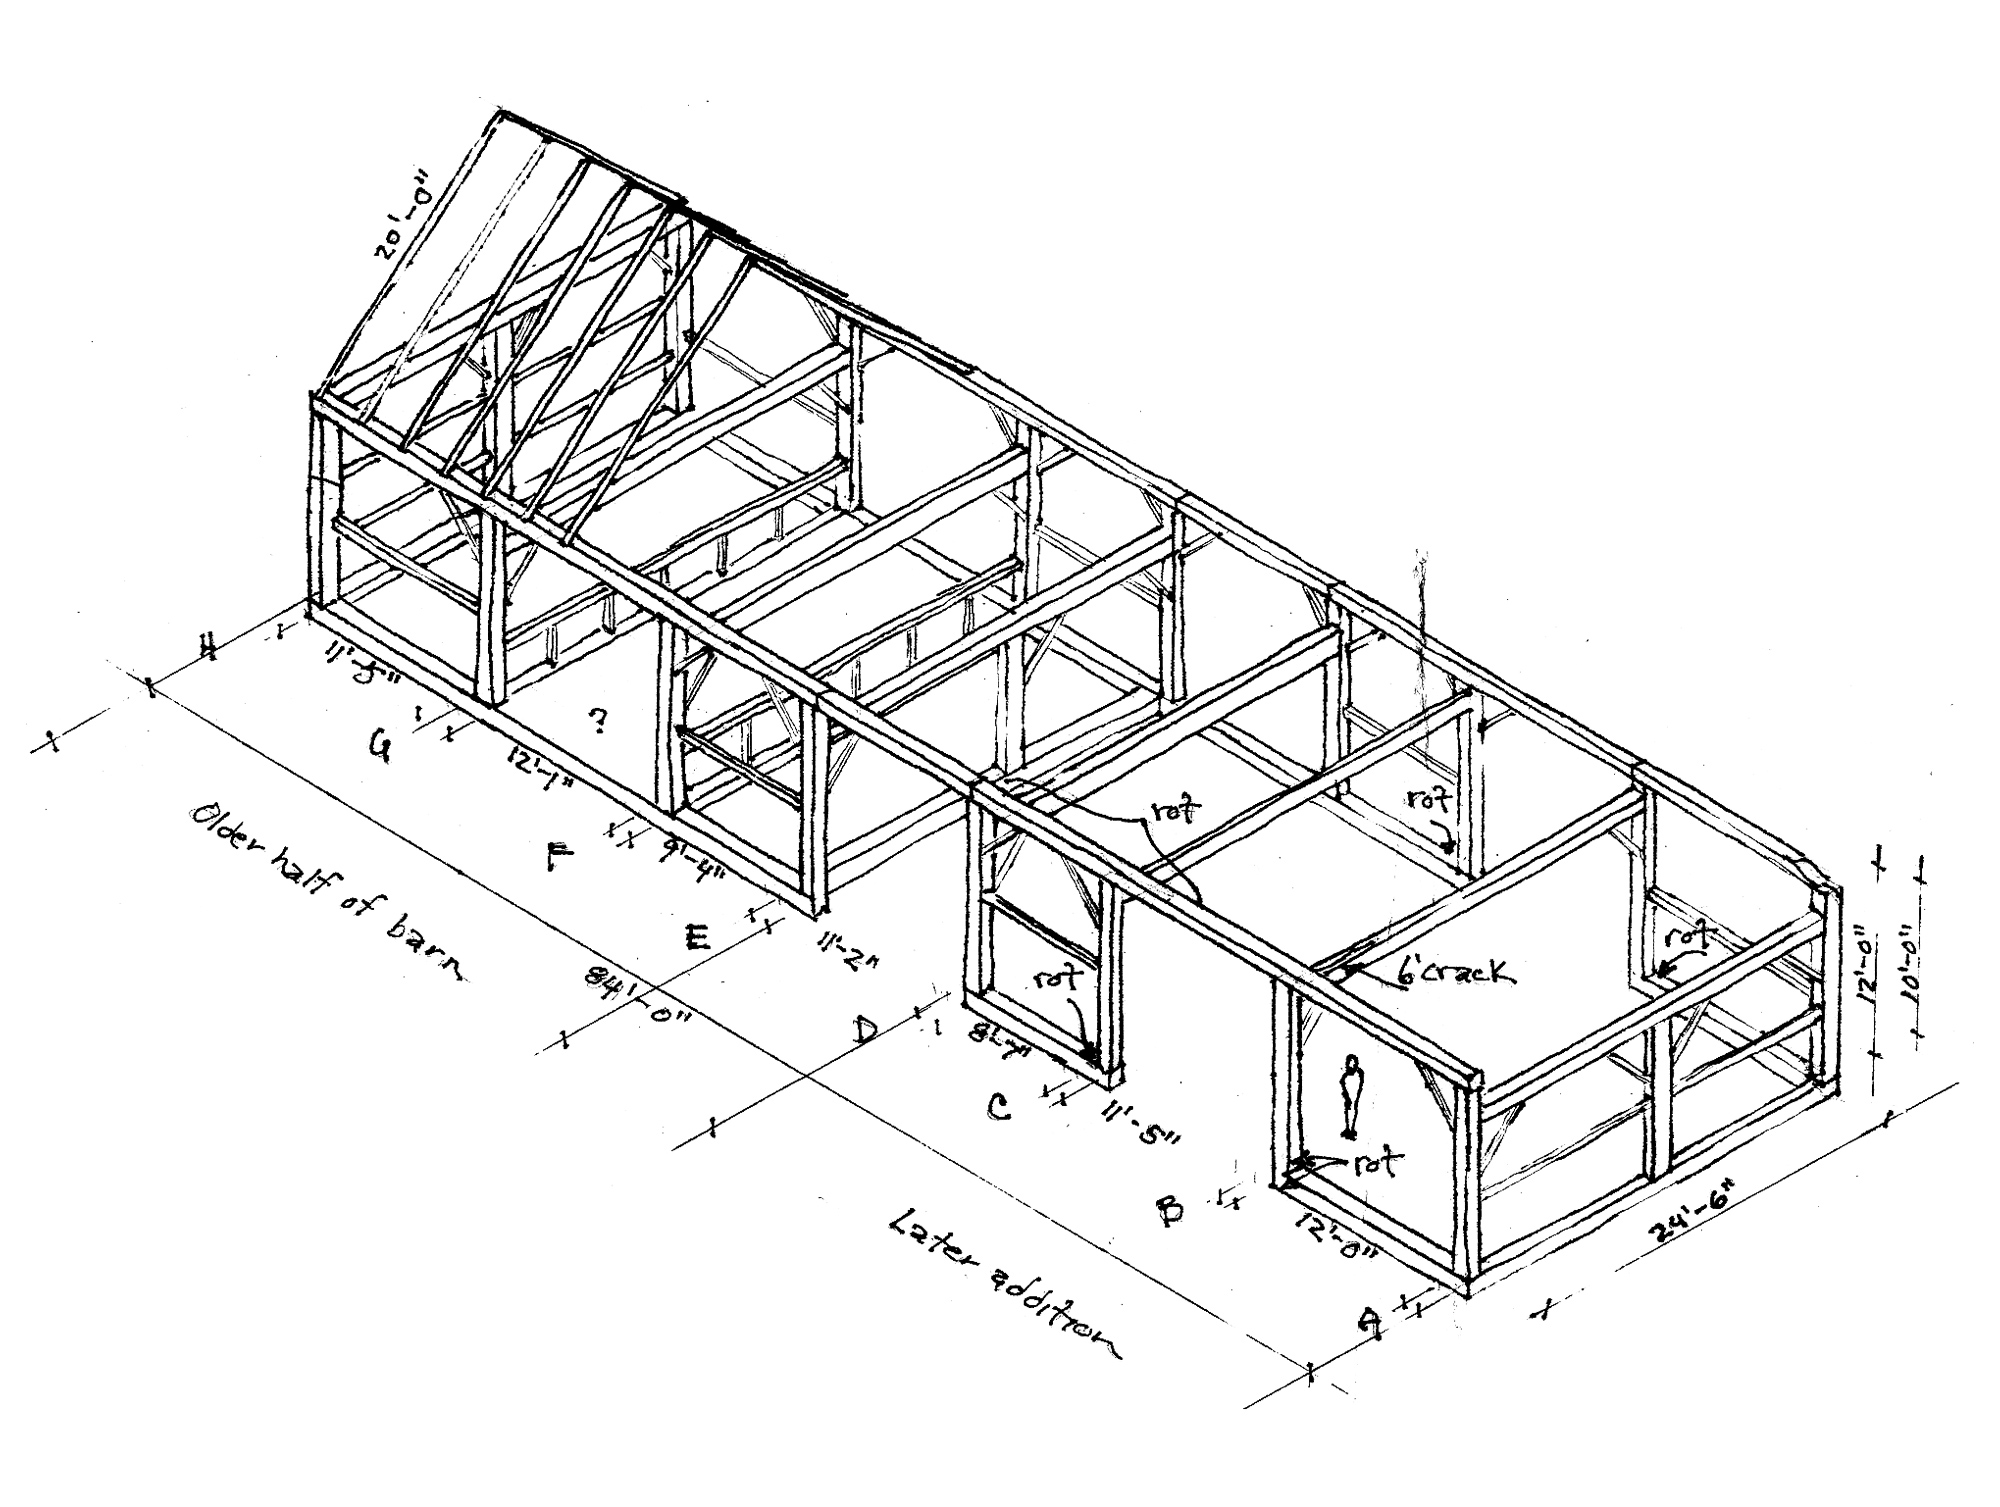 nfw-woodworking-illo.jpg